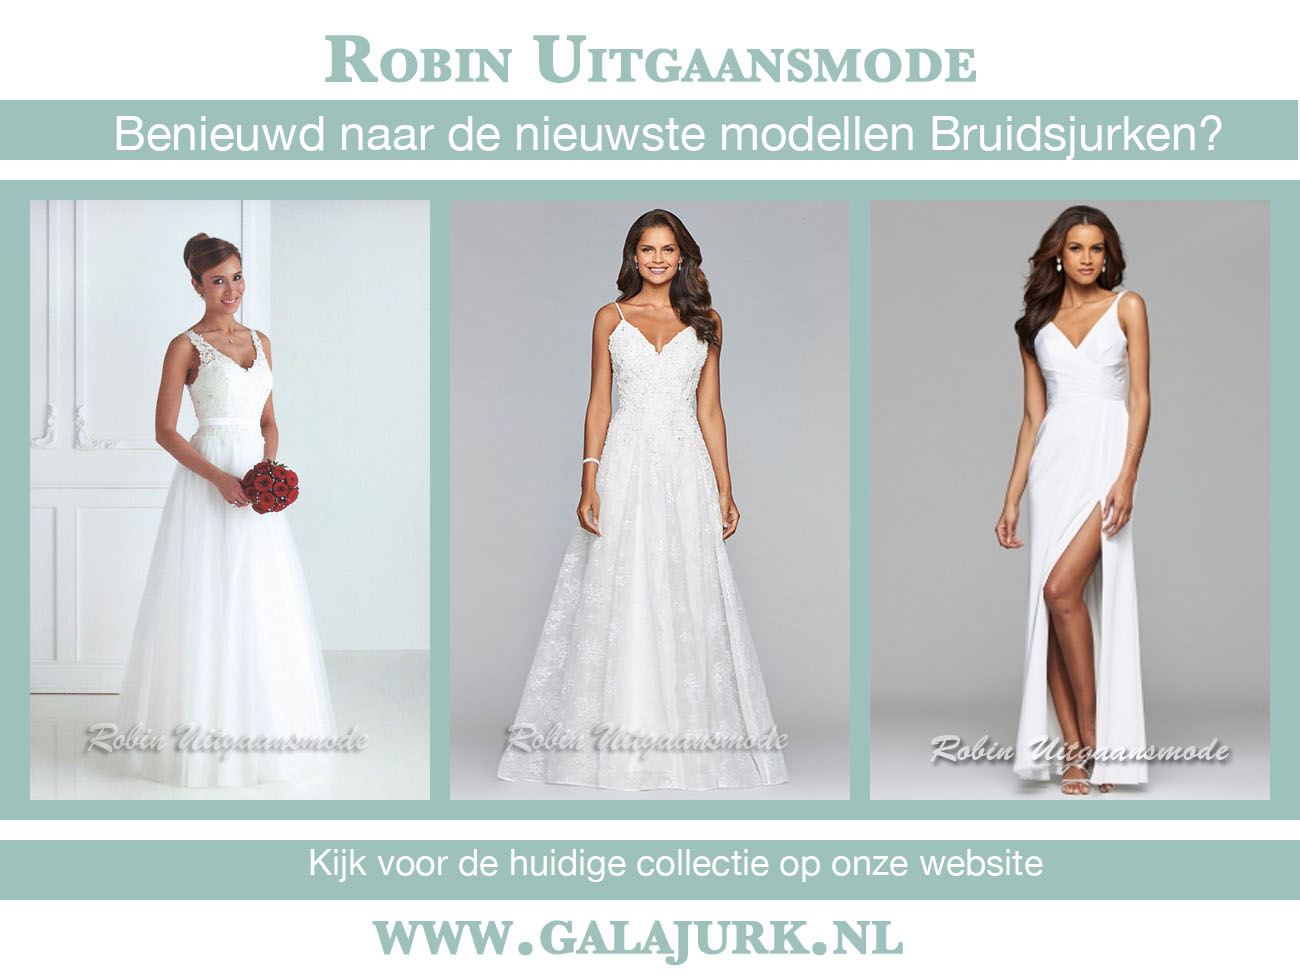 Elegant wedding dresses evening wear and party wear - Dressing modellen ...